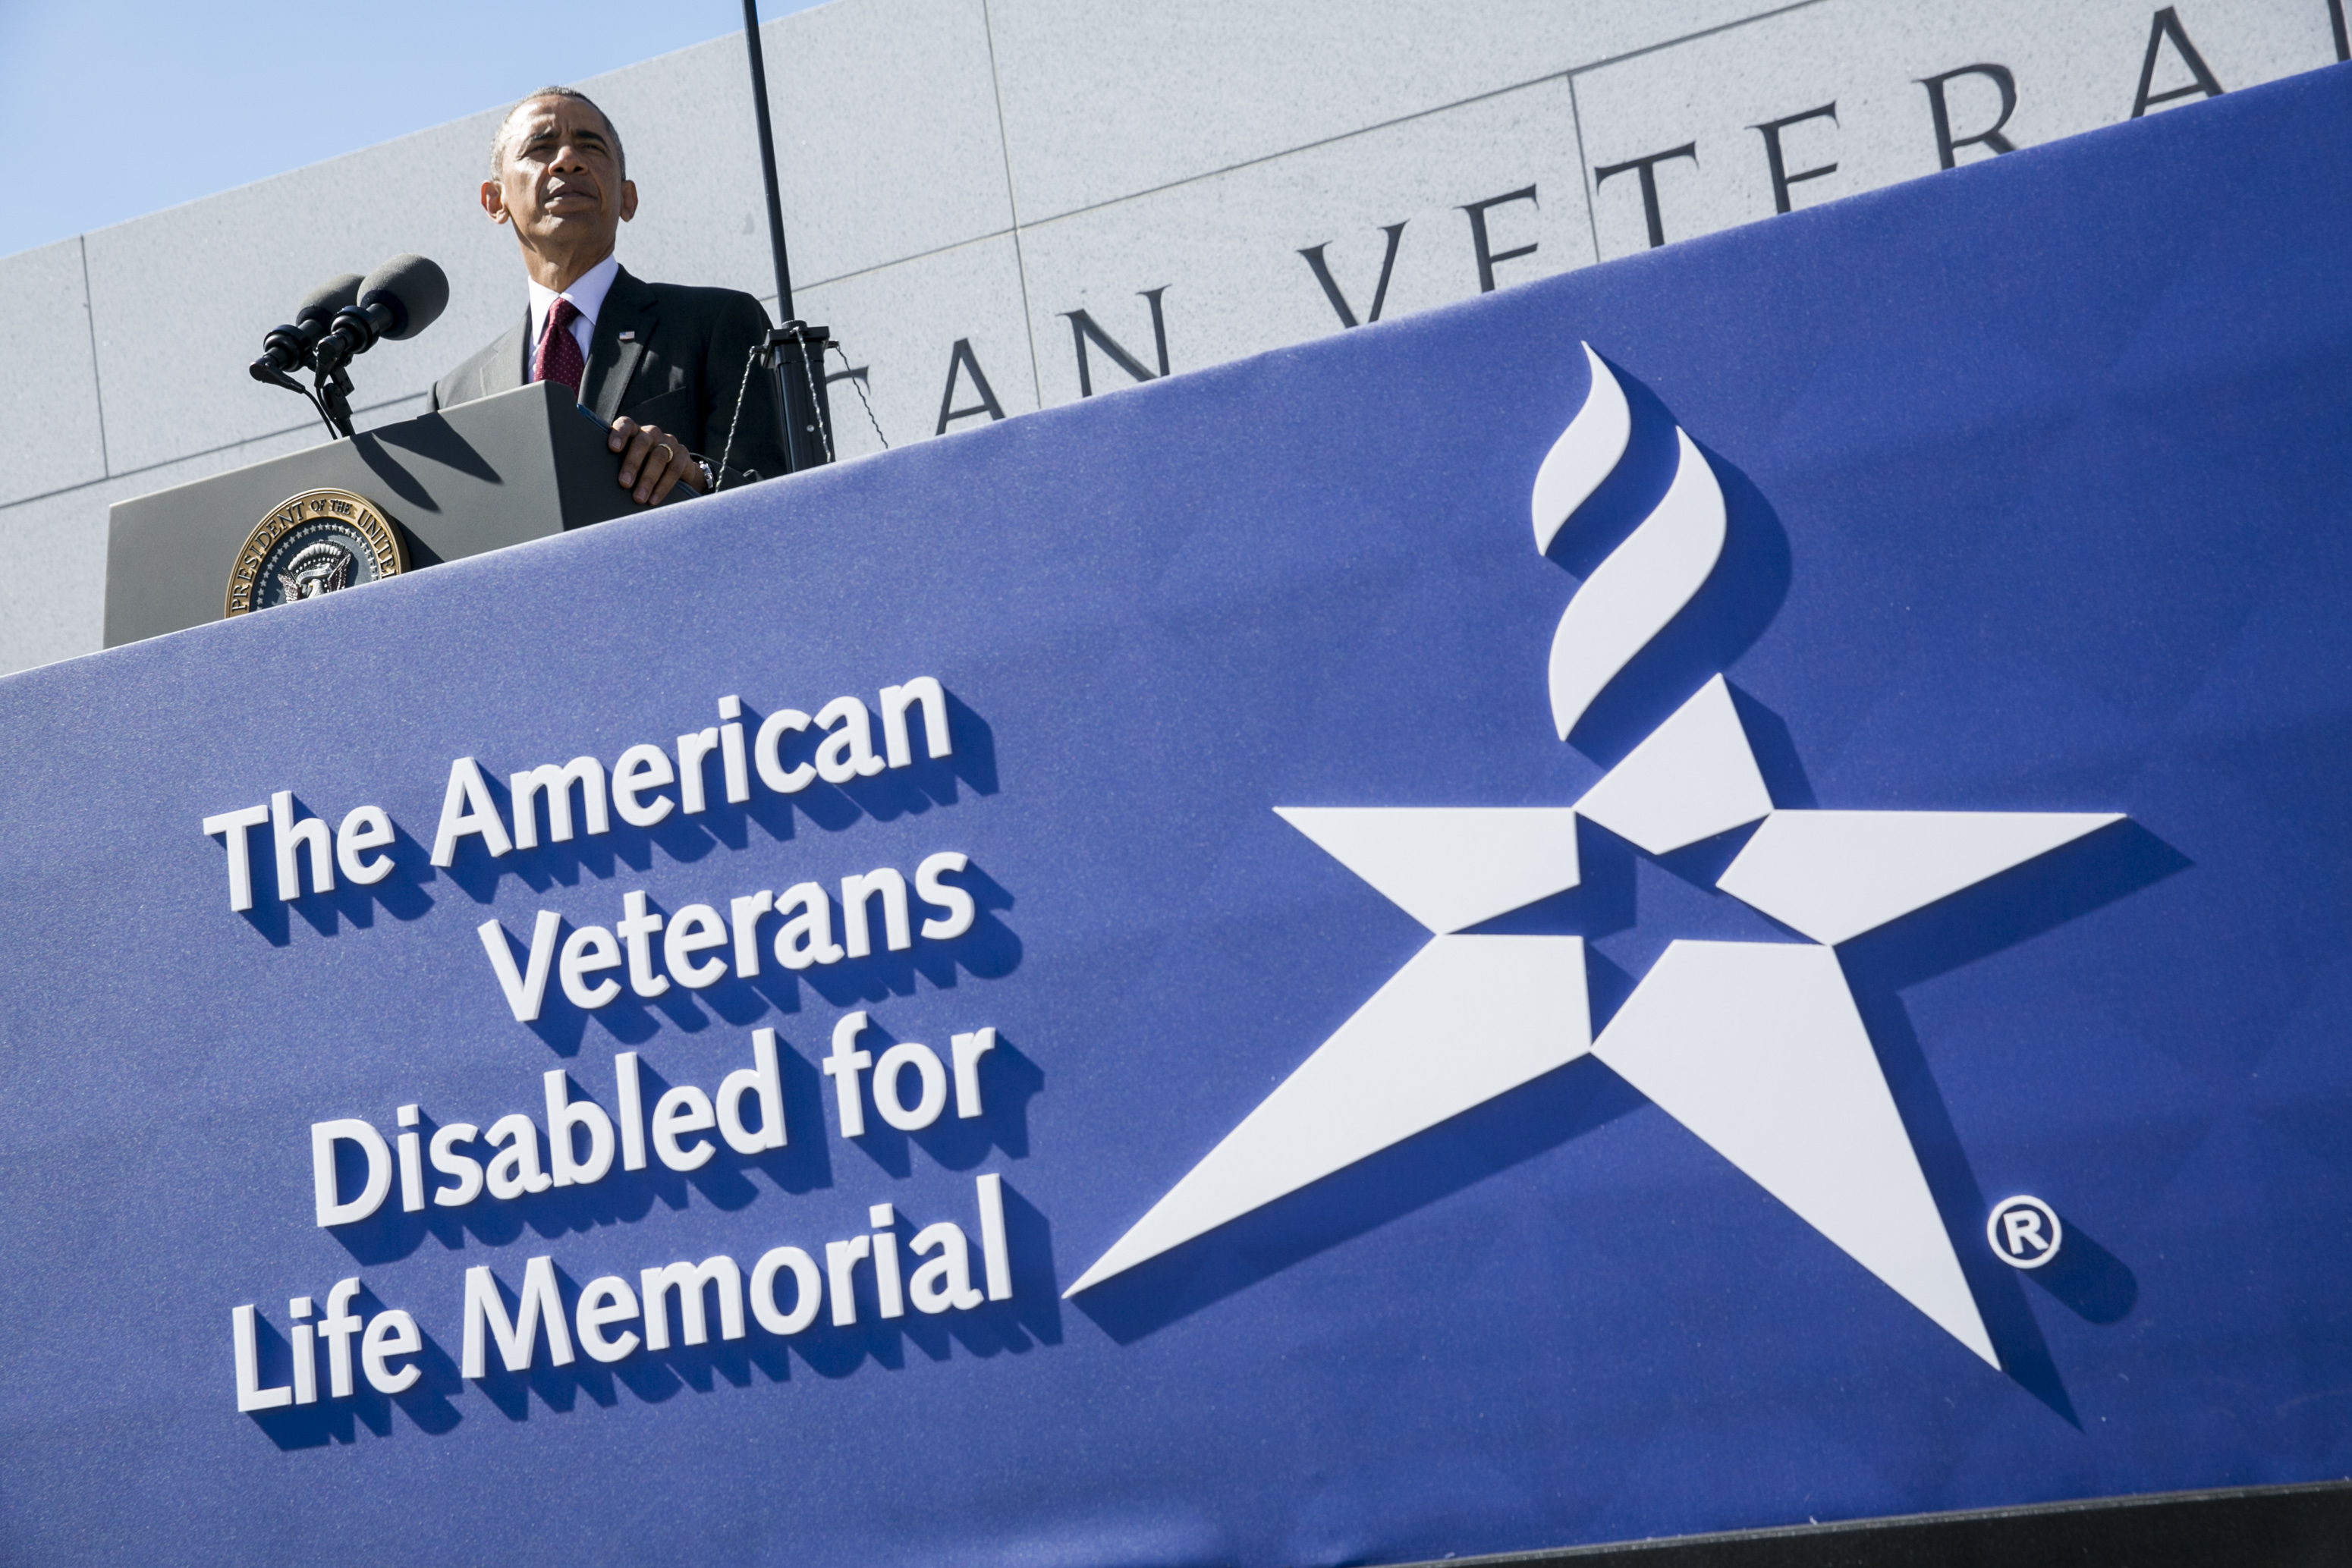 President Obama speaks Sunday at a new memorial in Washington dedicated to disabled veterans.